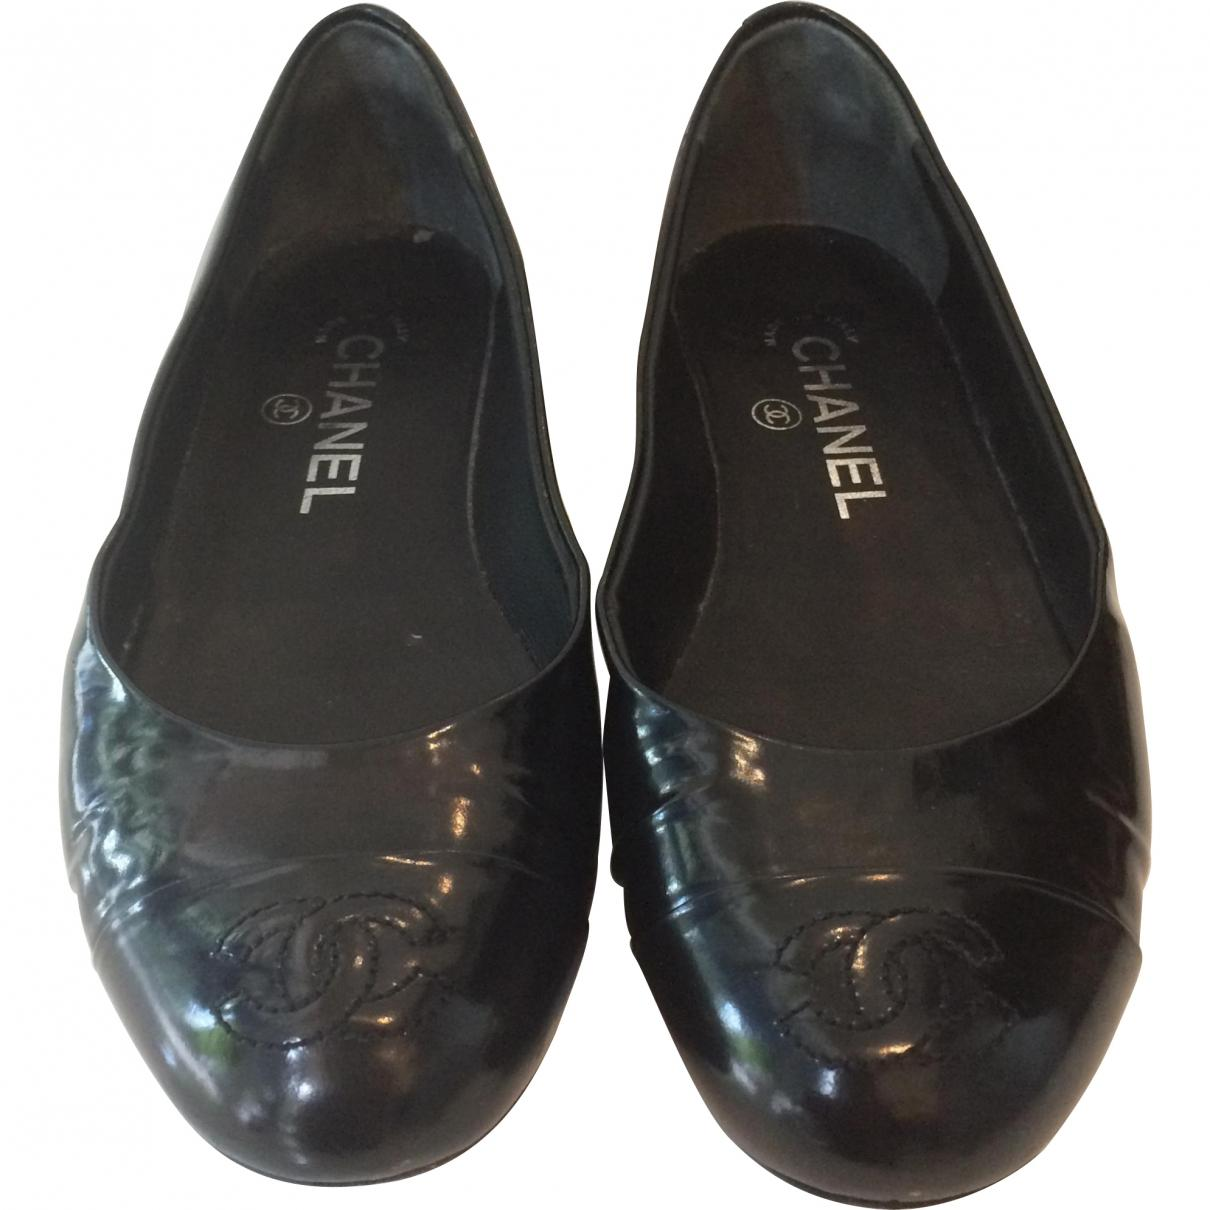 Lyst - Chanel Pre-owned Leather Flats In Black